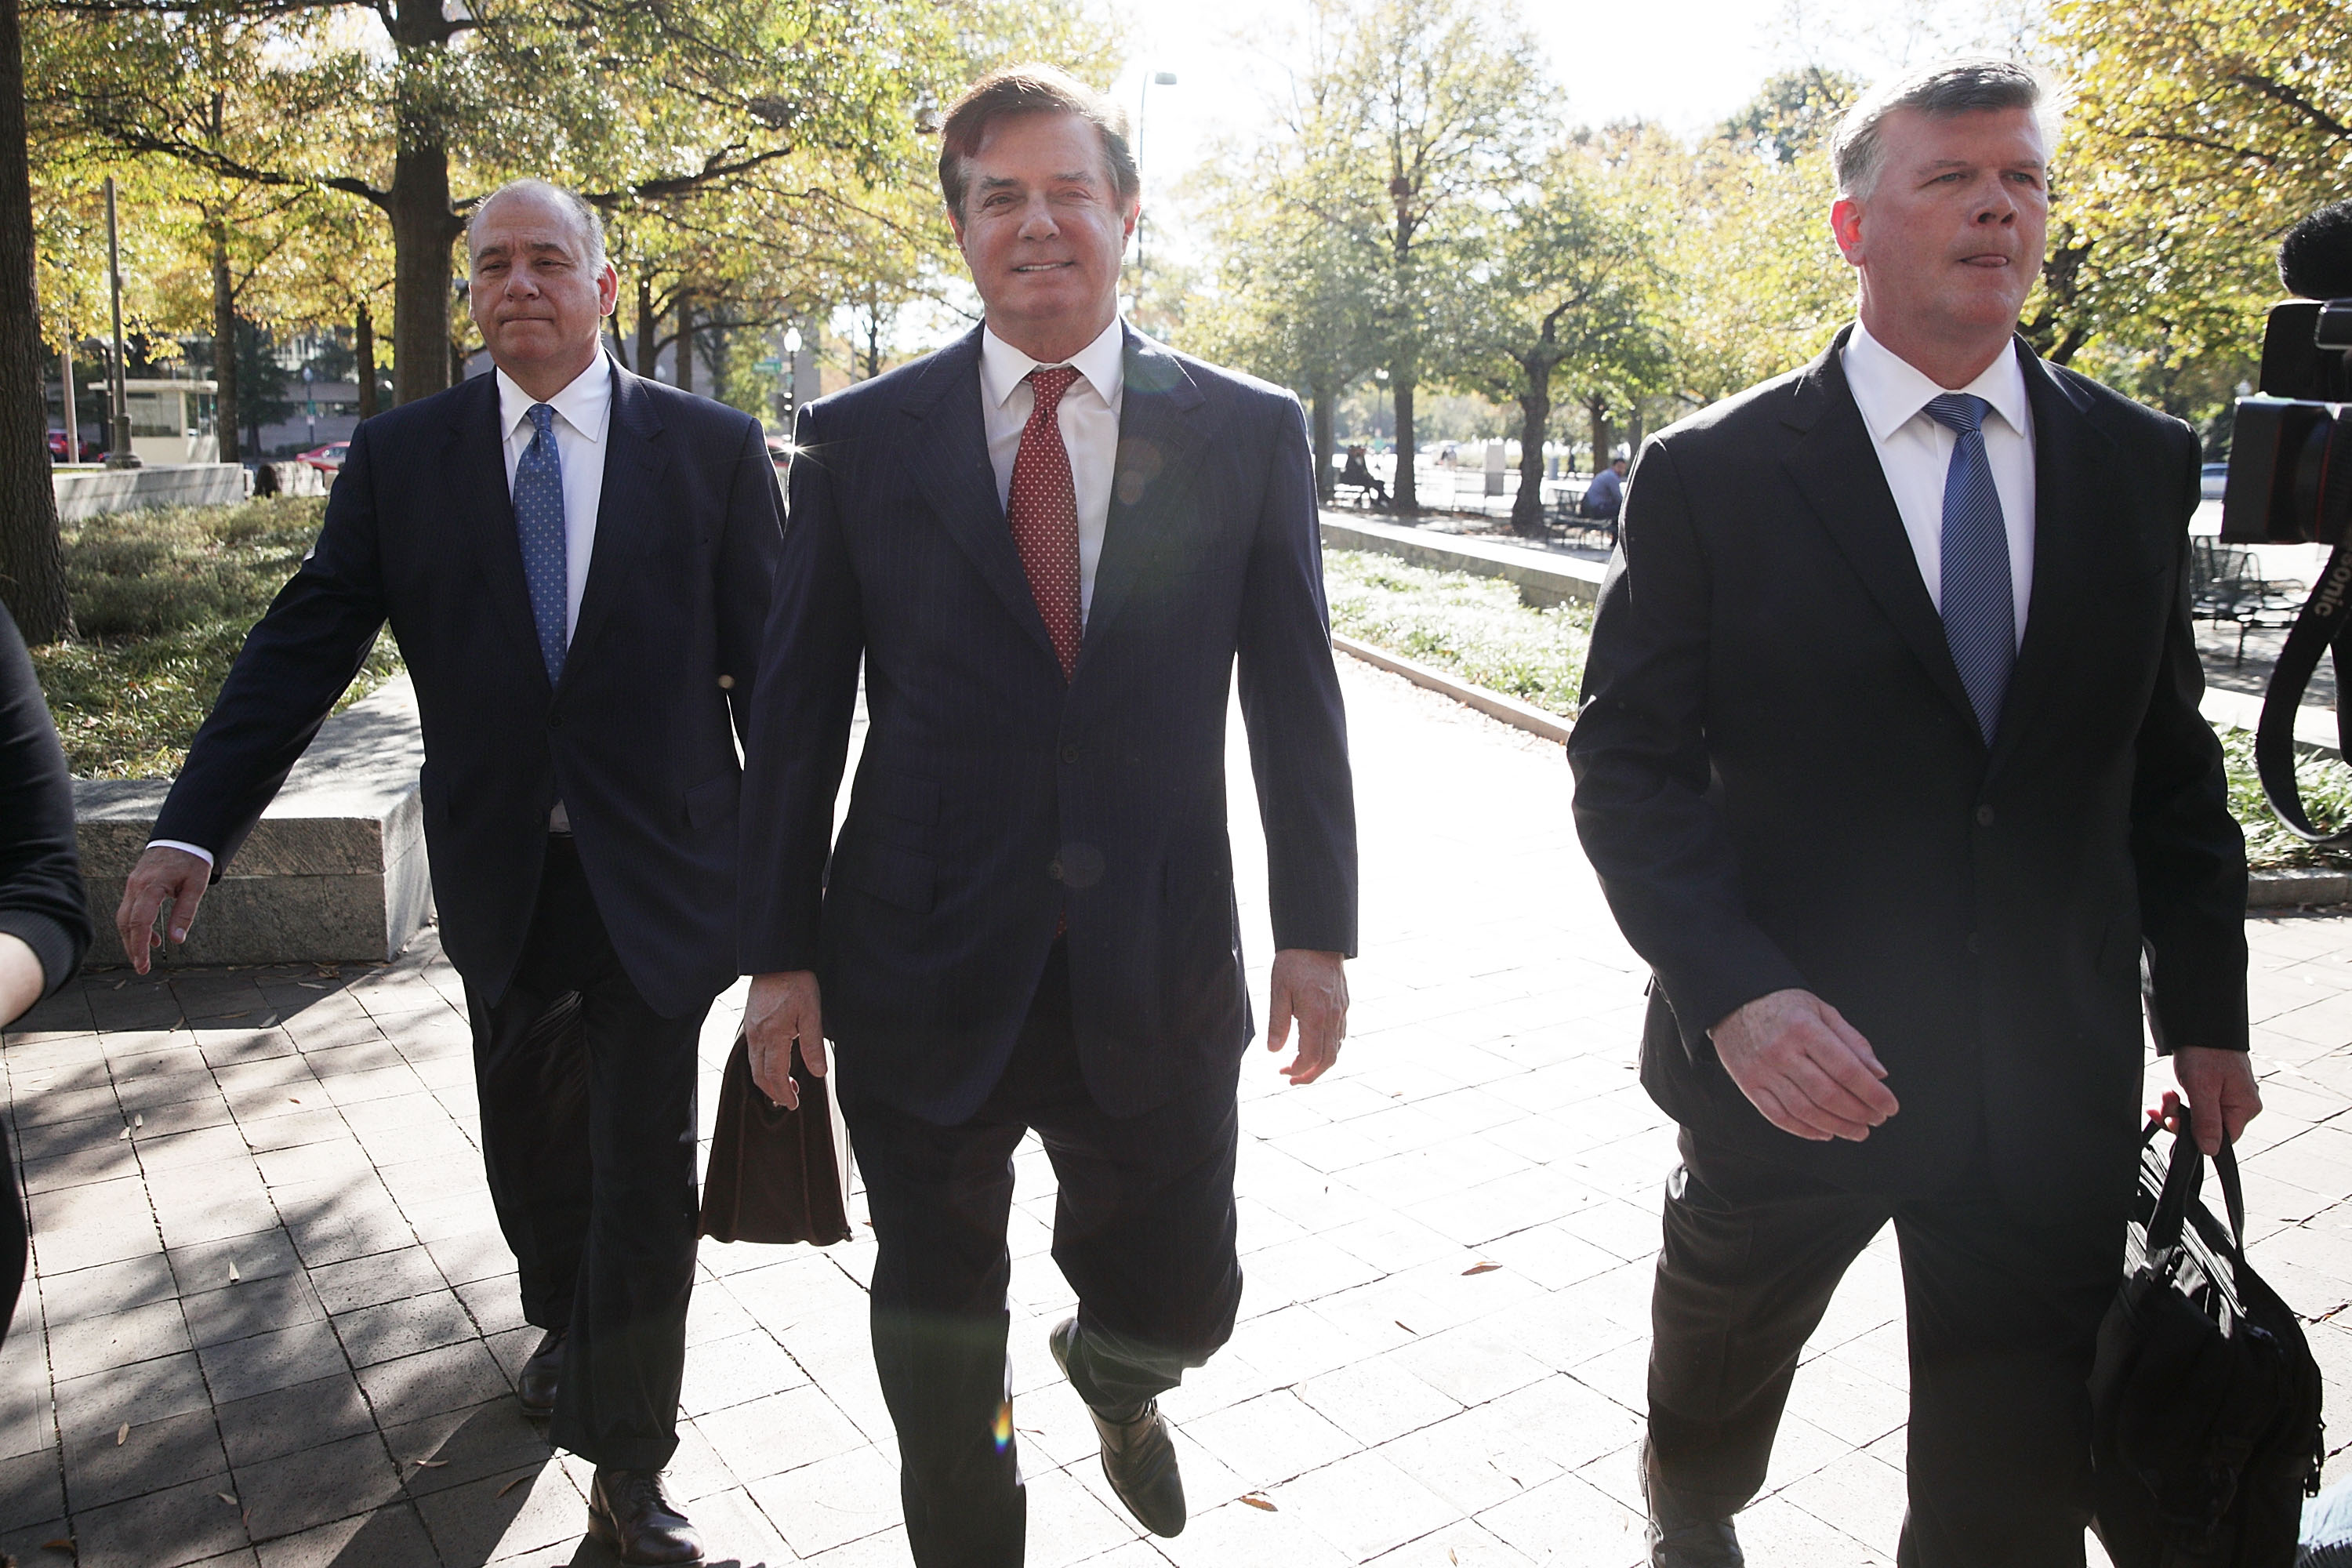 Paul Manafort And Rick Gates Attend Bail Hearing At U.S. District Court